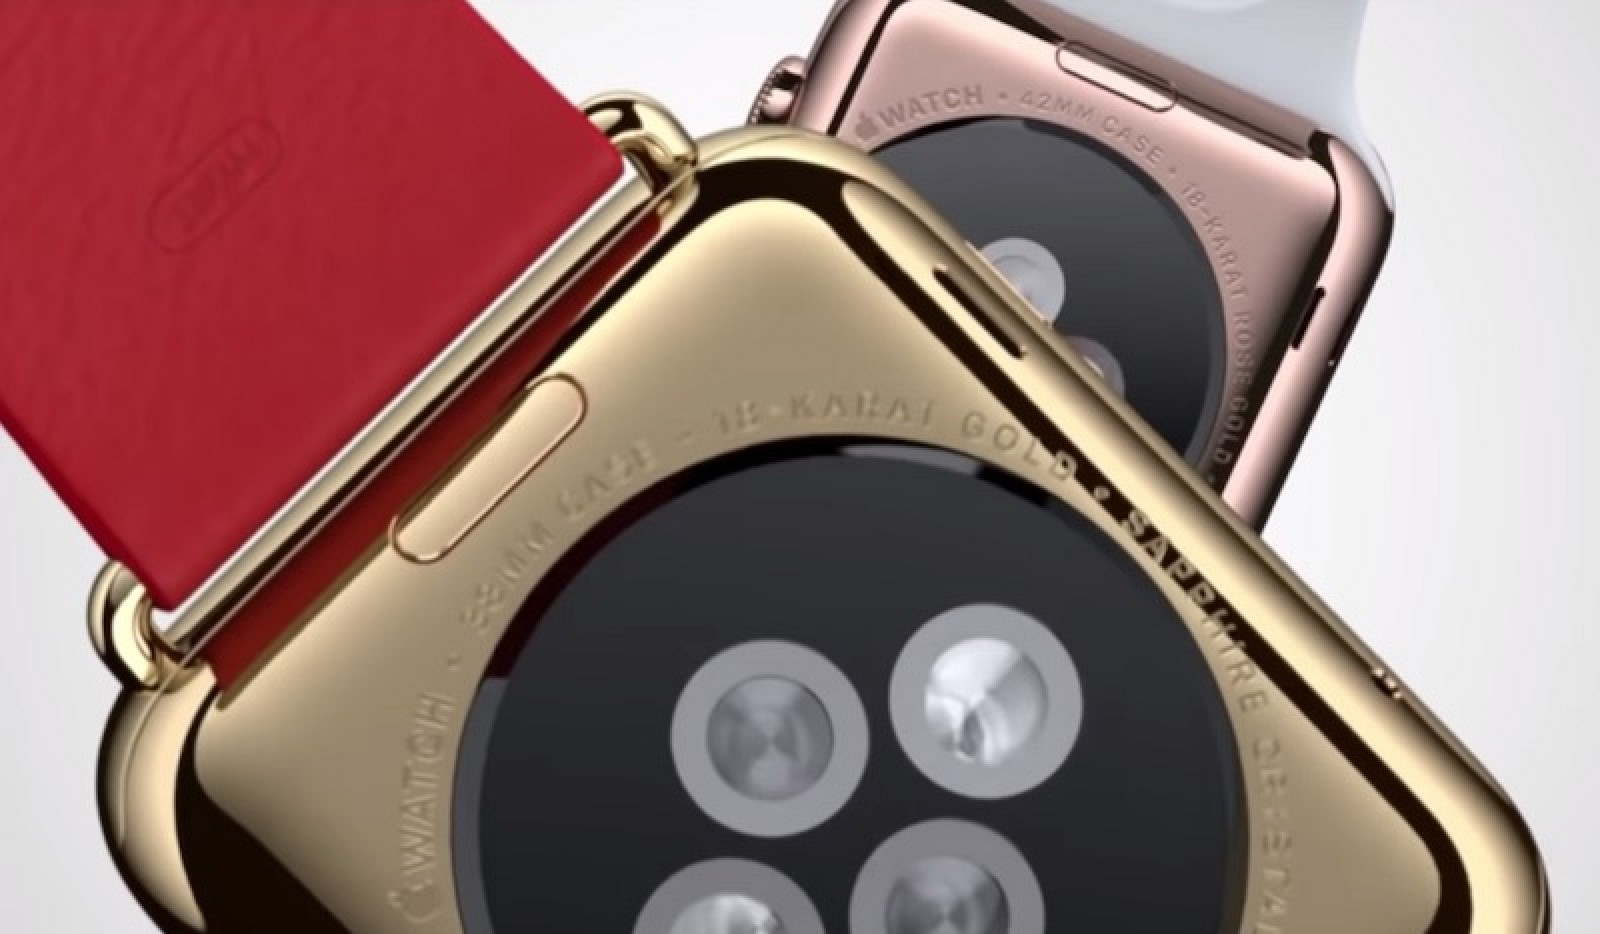 Bloomberg: 18-Karat Gold Apple Watch Edition Sales Fizzled After Just Two Weeks